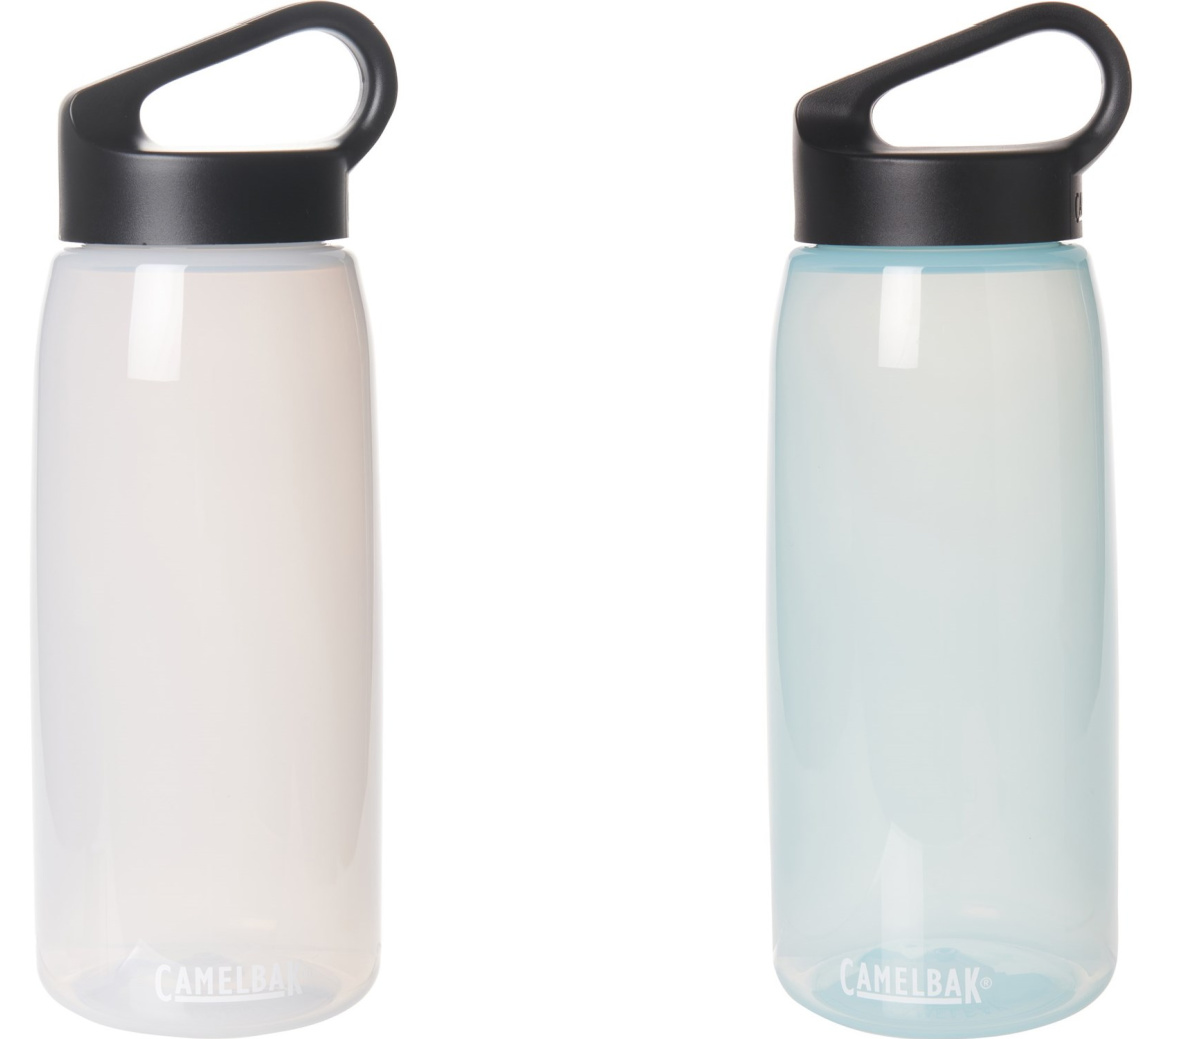 two white water bottles with black lids